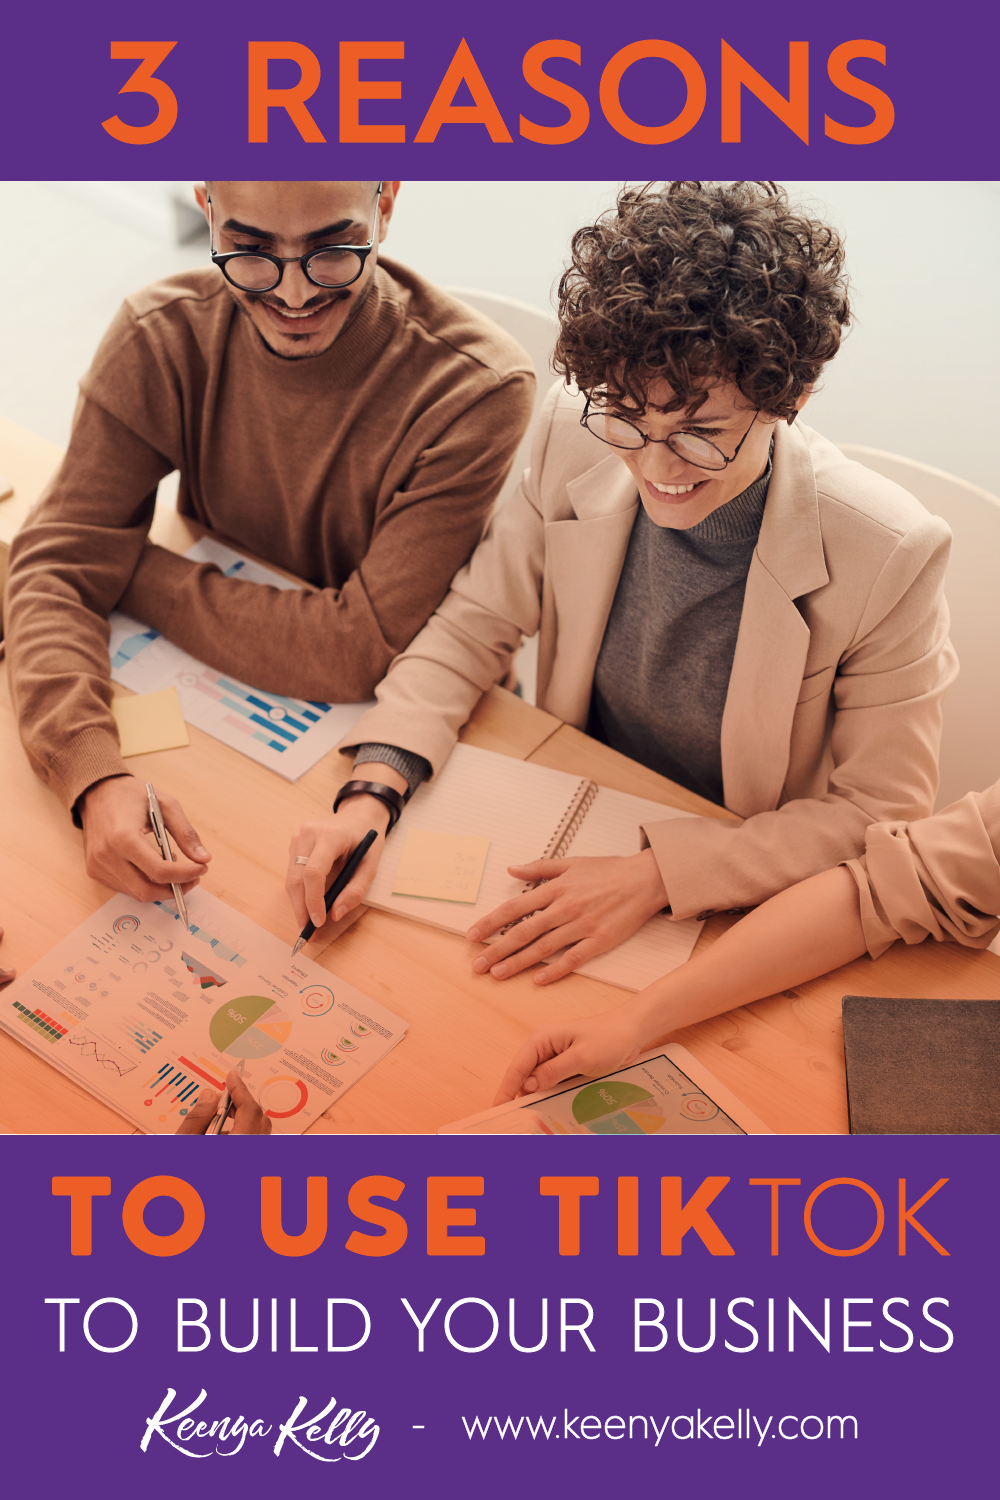 3 Reasons To Use Tiktok For Business Network Marketing Business Network Marketing Attraction Marketing